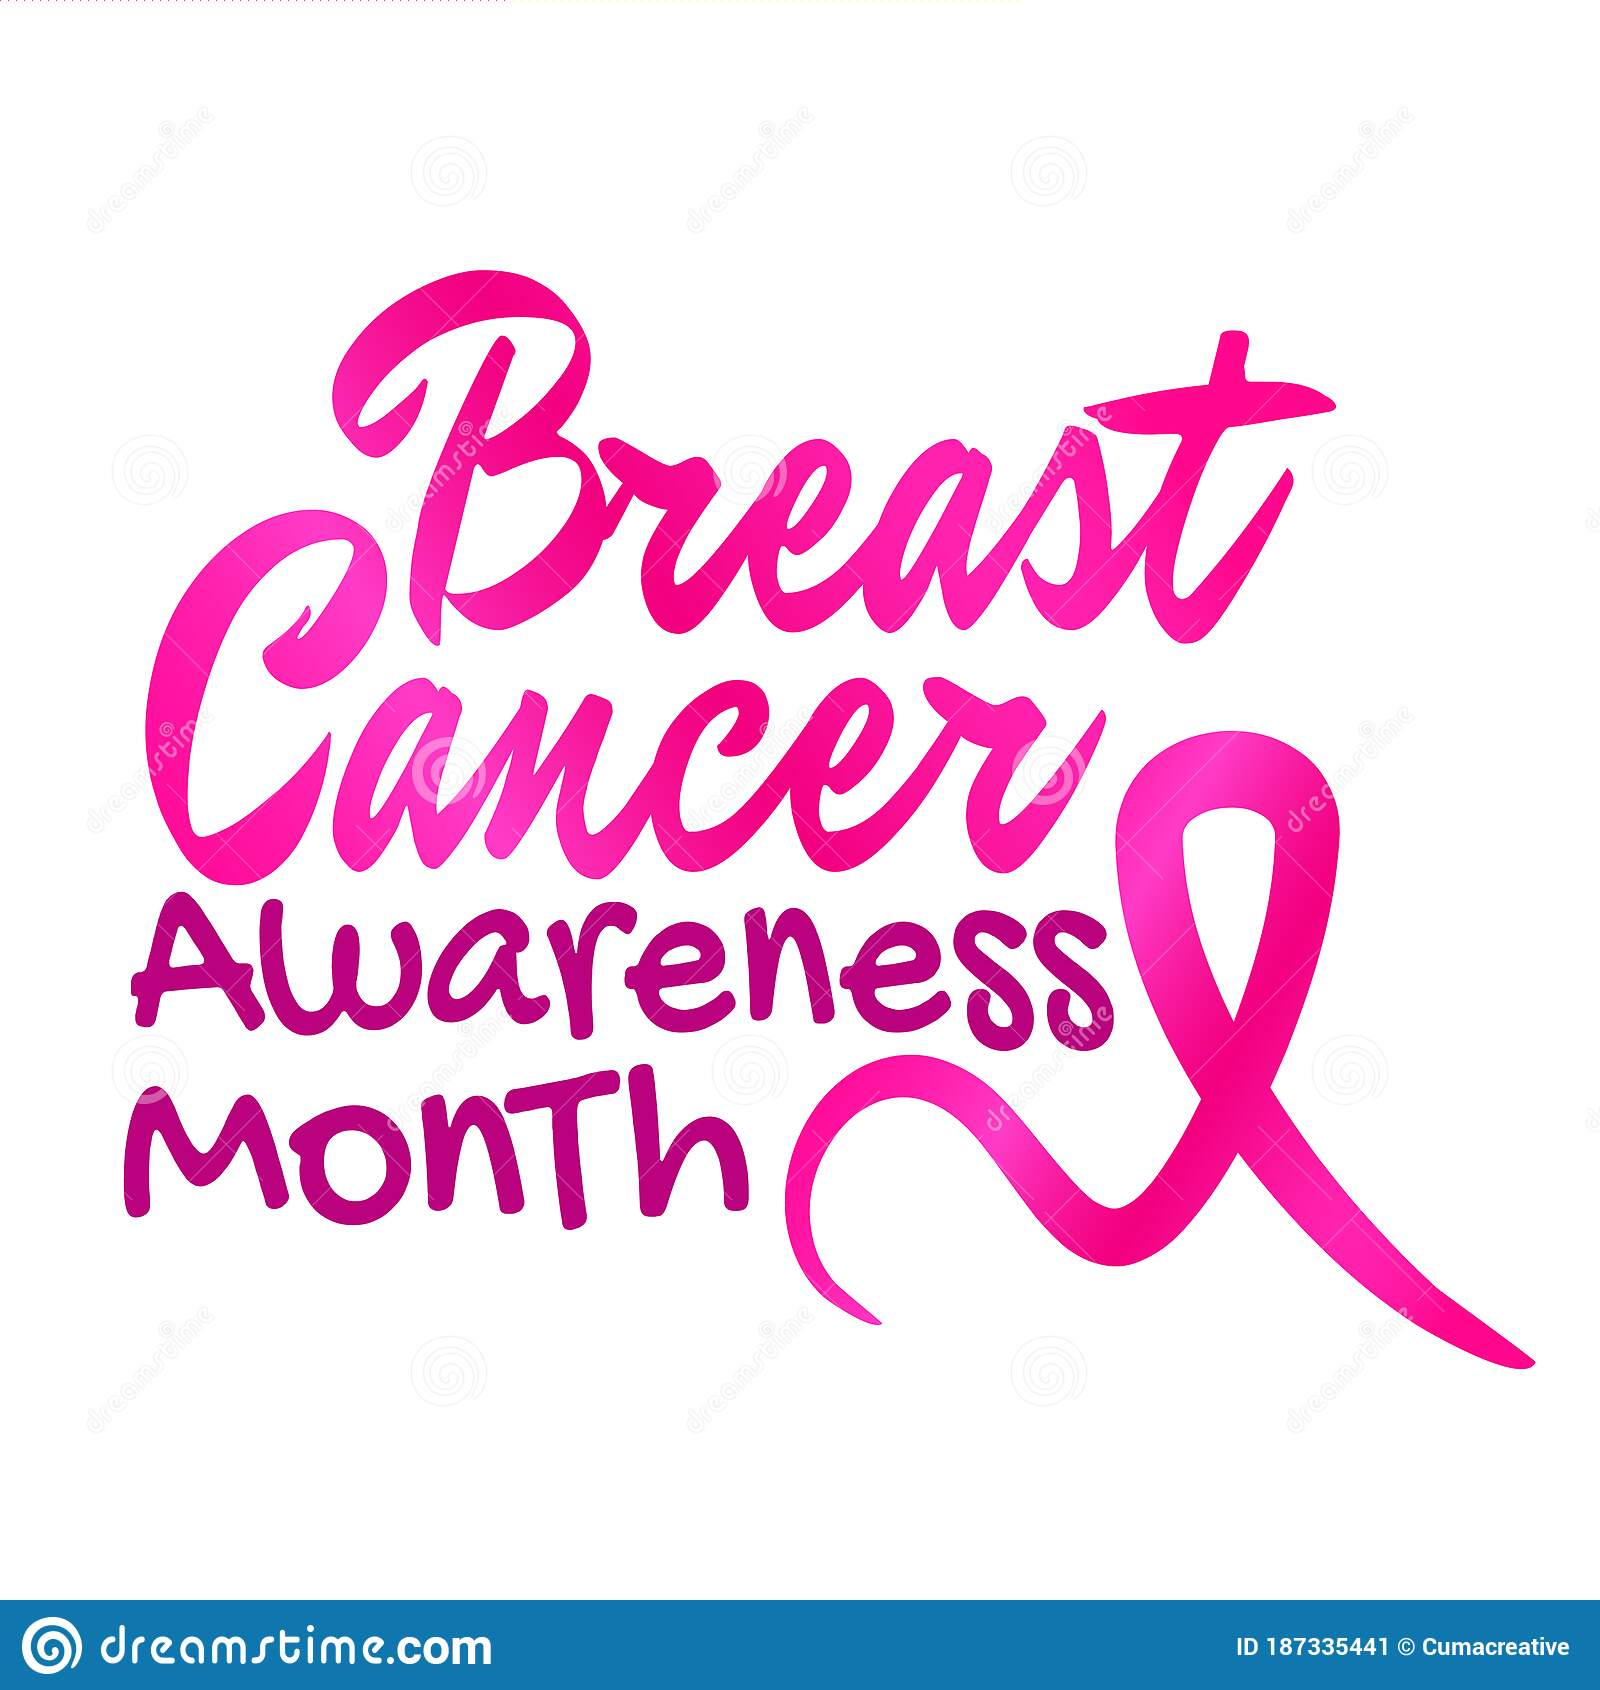 Breast Cancer Awareness Quotes. Breast Cancer Awareness Month ...